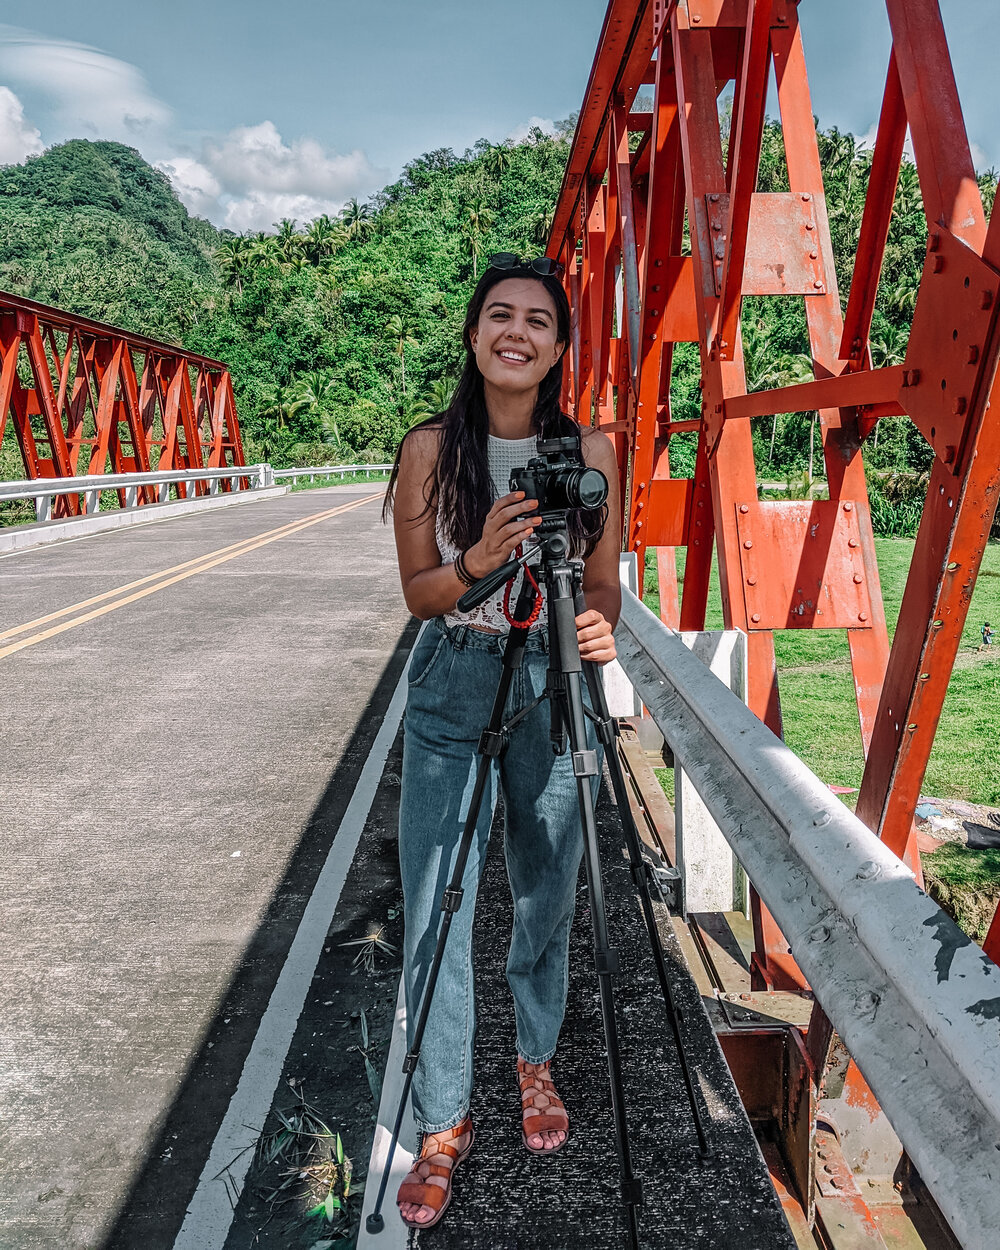 Rachel Off Duty: Woman on a Bridge with a Camera in the Philippines